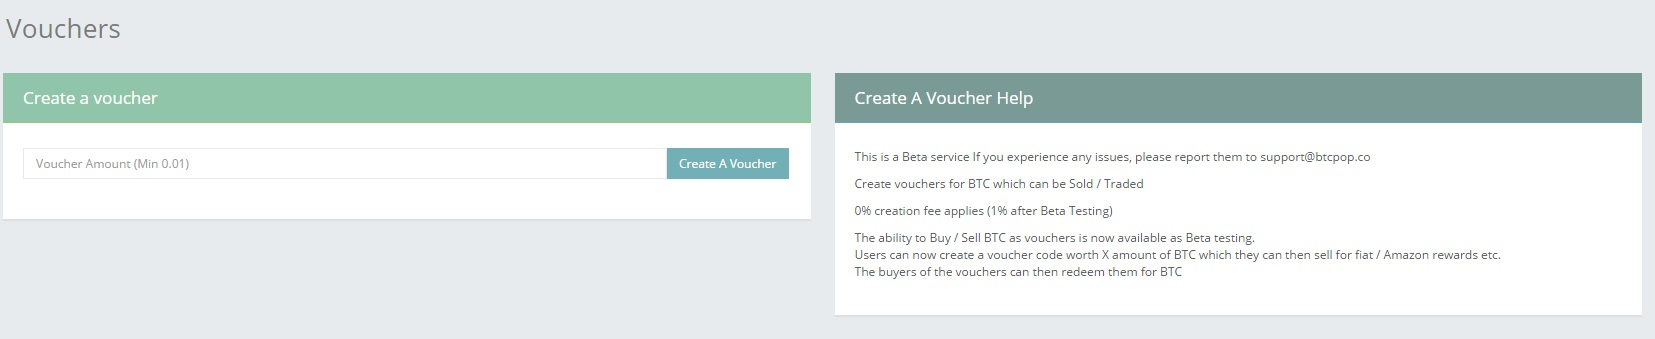 Create A Voucher ophion